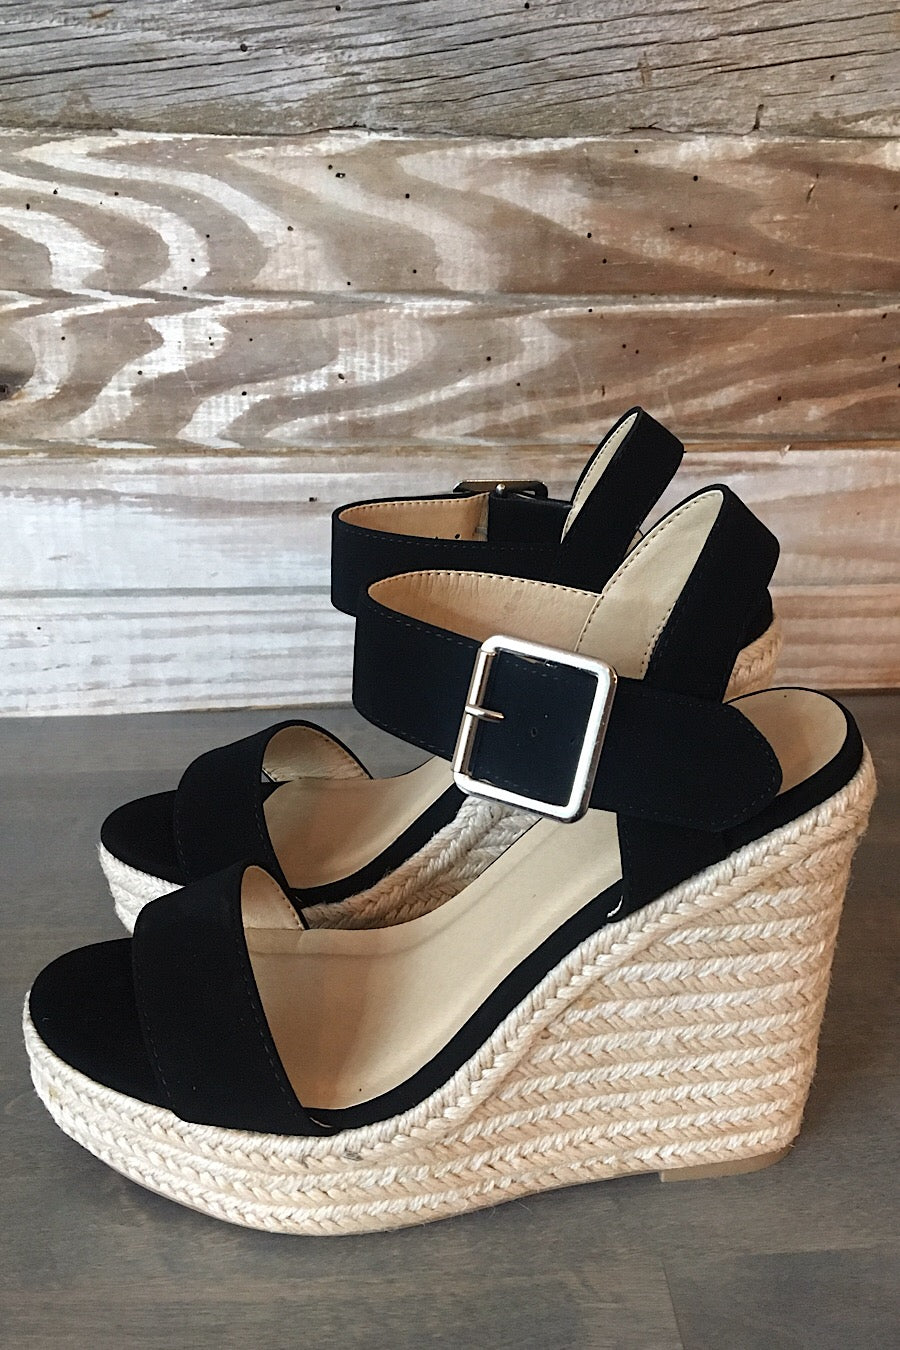 CCOCCI Burst Wedge Sandals in Black